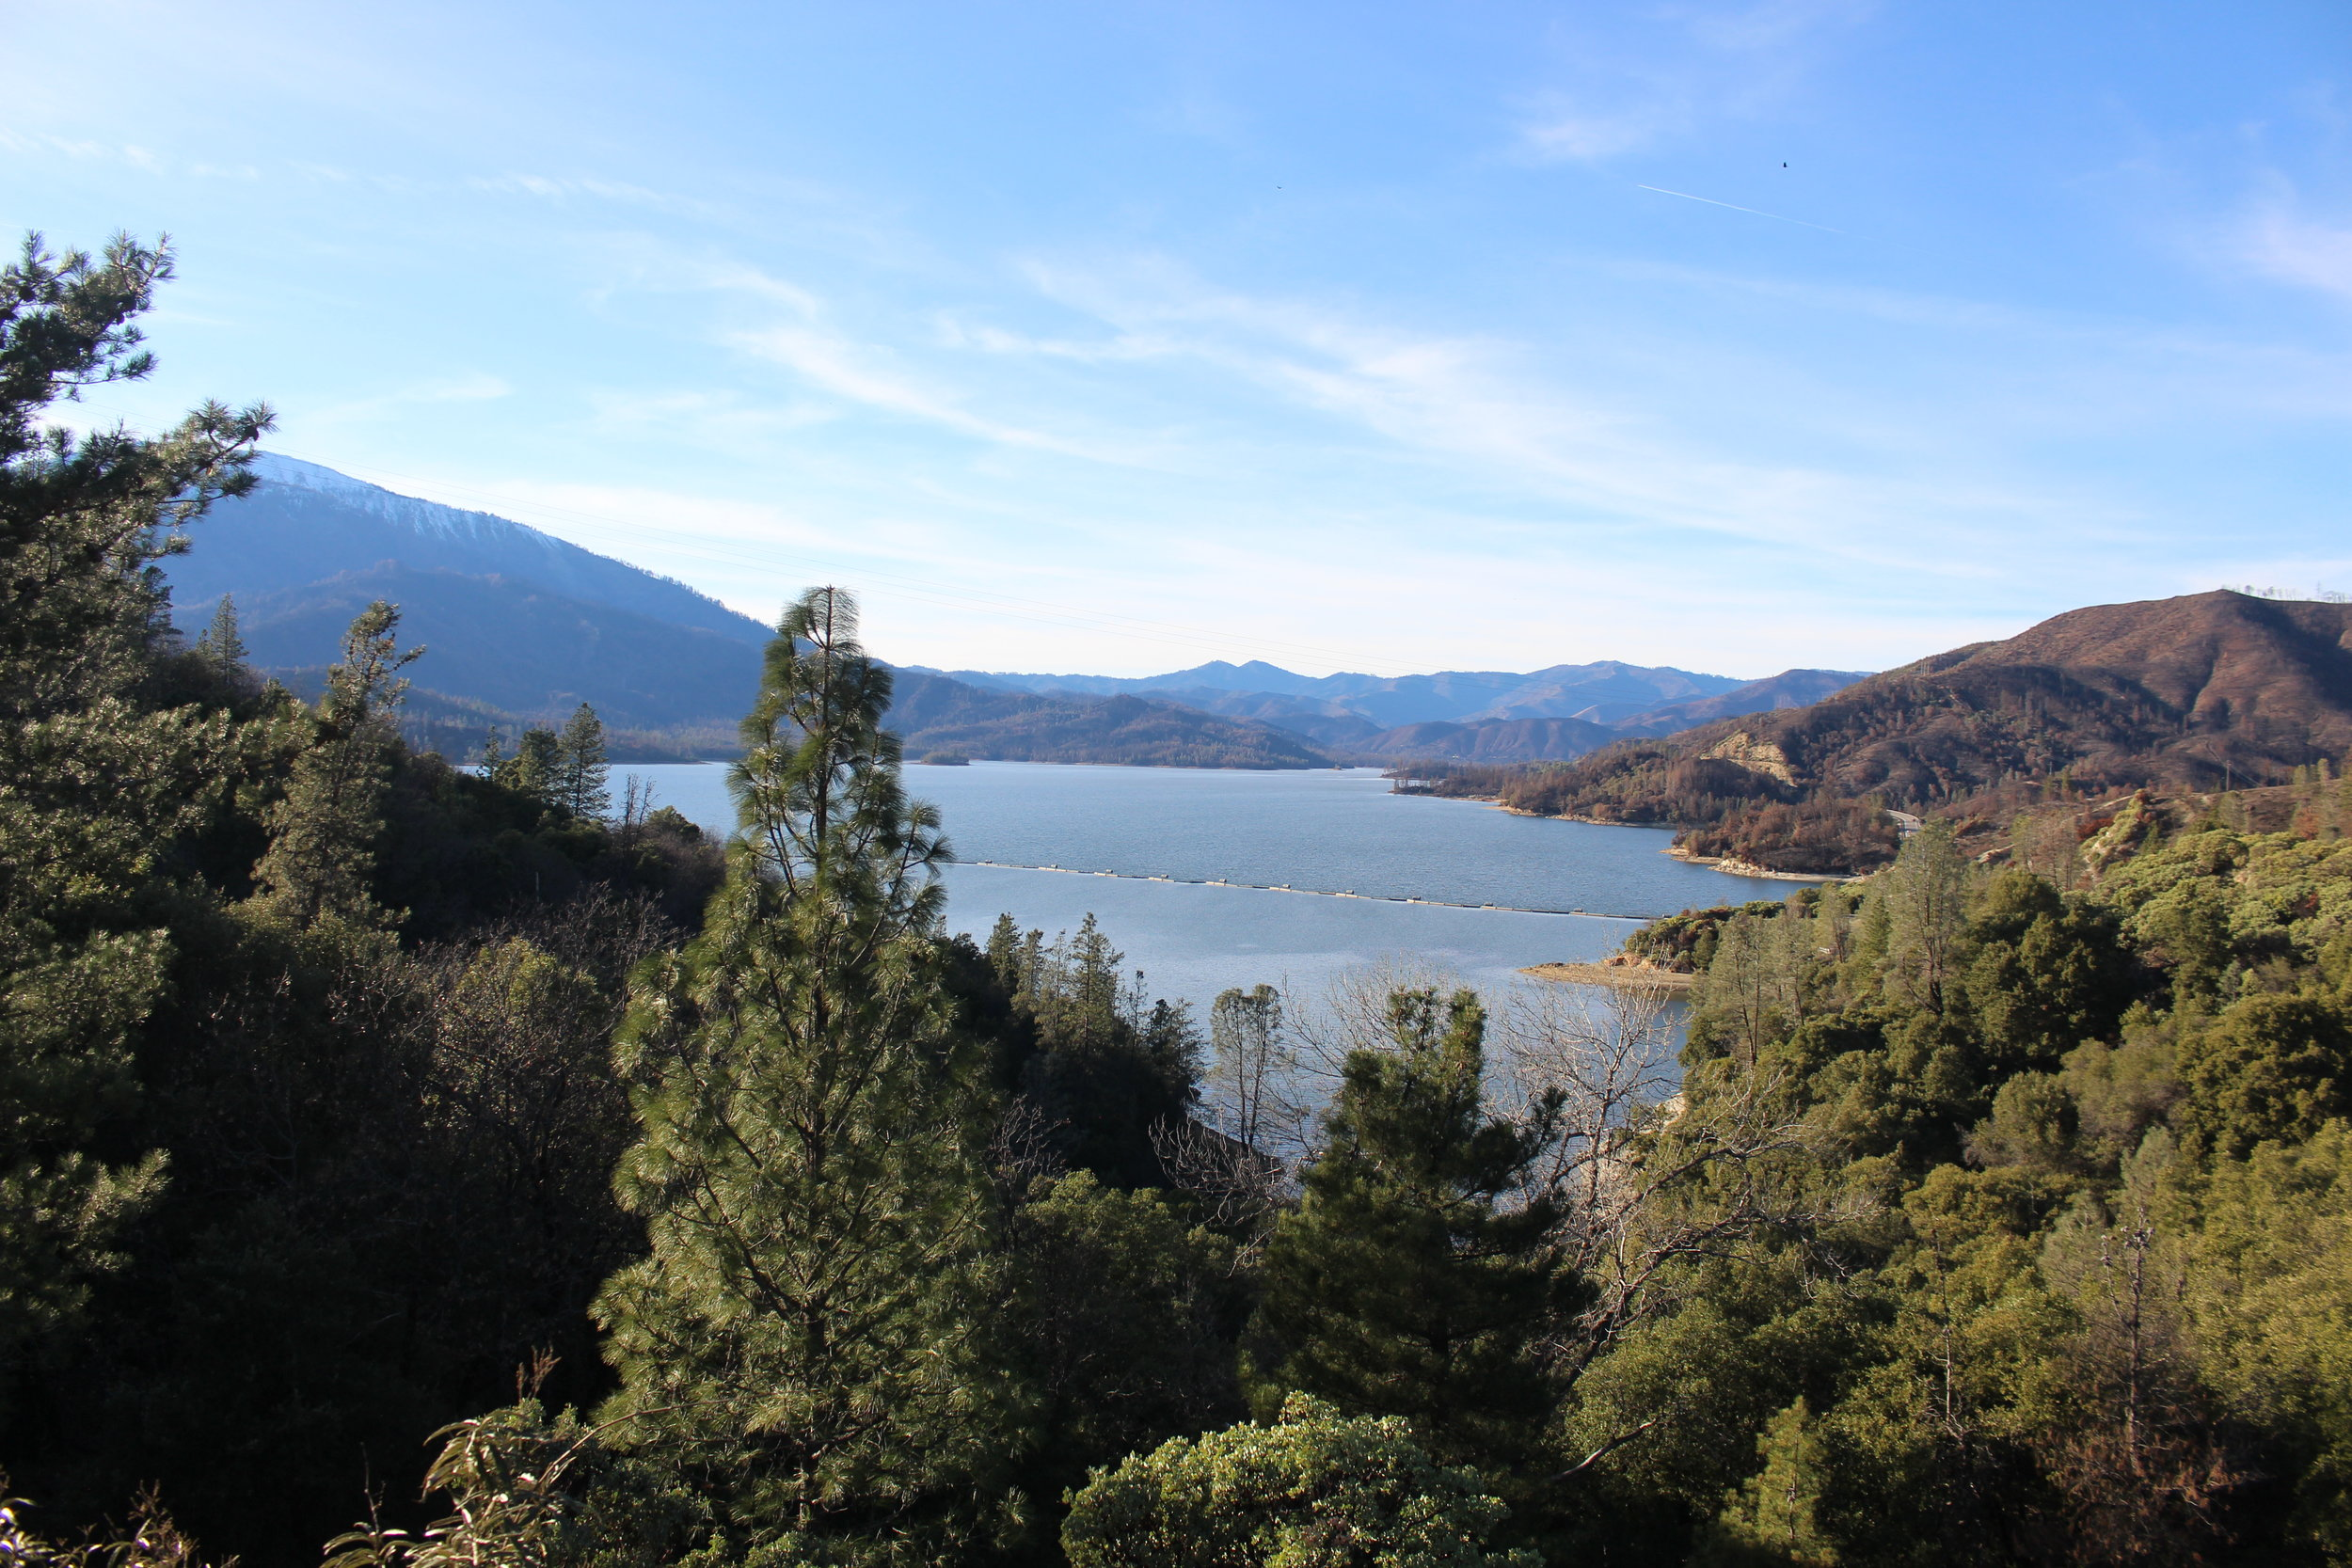 Whiskeytown Lake, Redding CA - Whiskeytown Lake is where the Carr Fire originated. The fire was so powerful that it melted several boats on the lake.